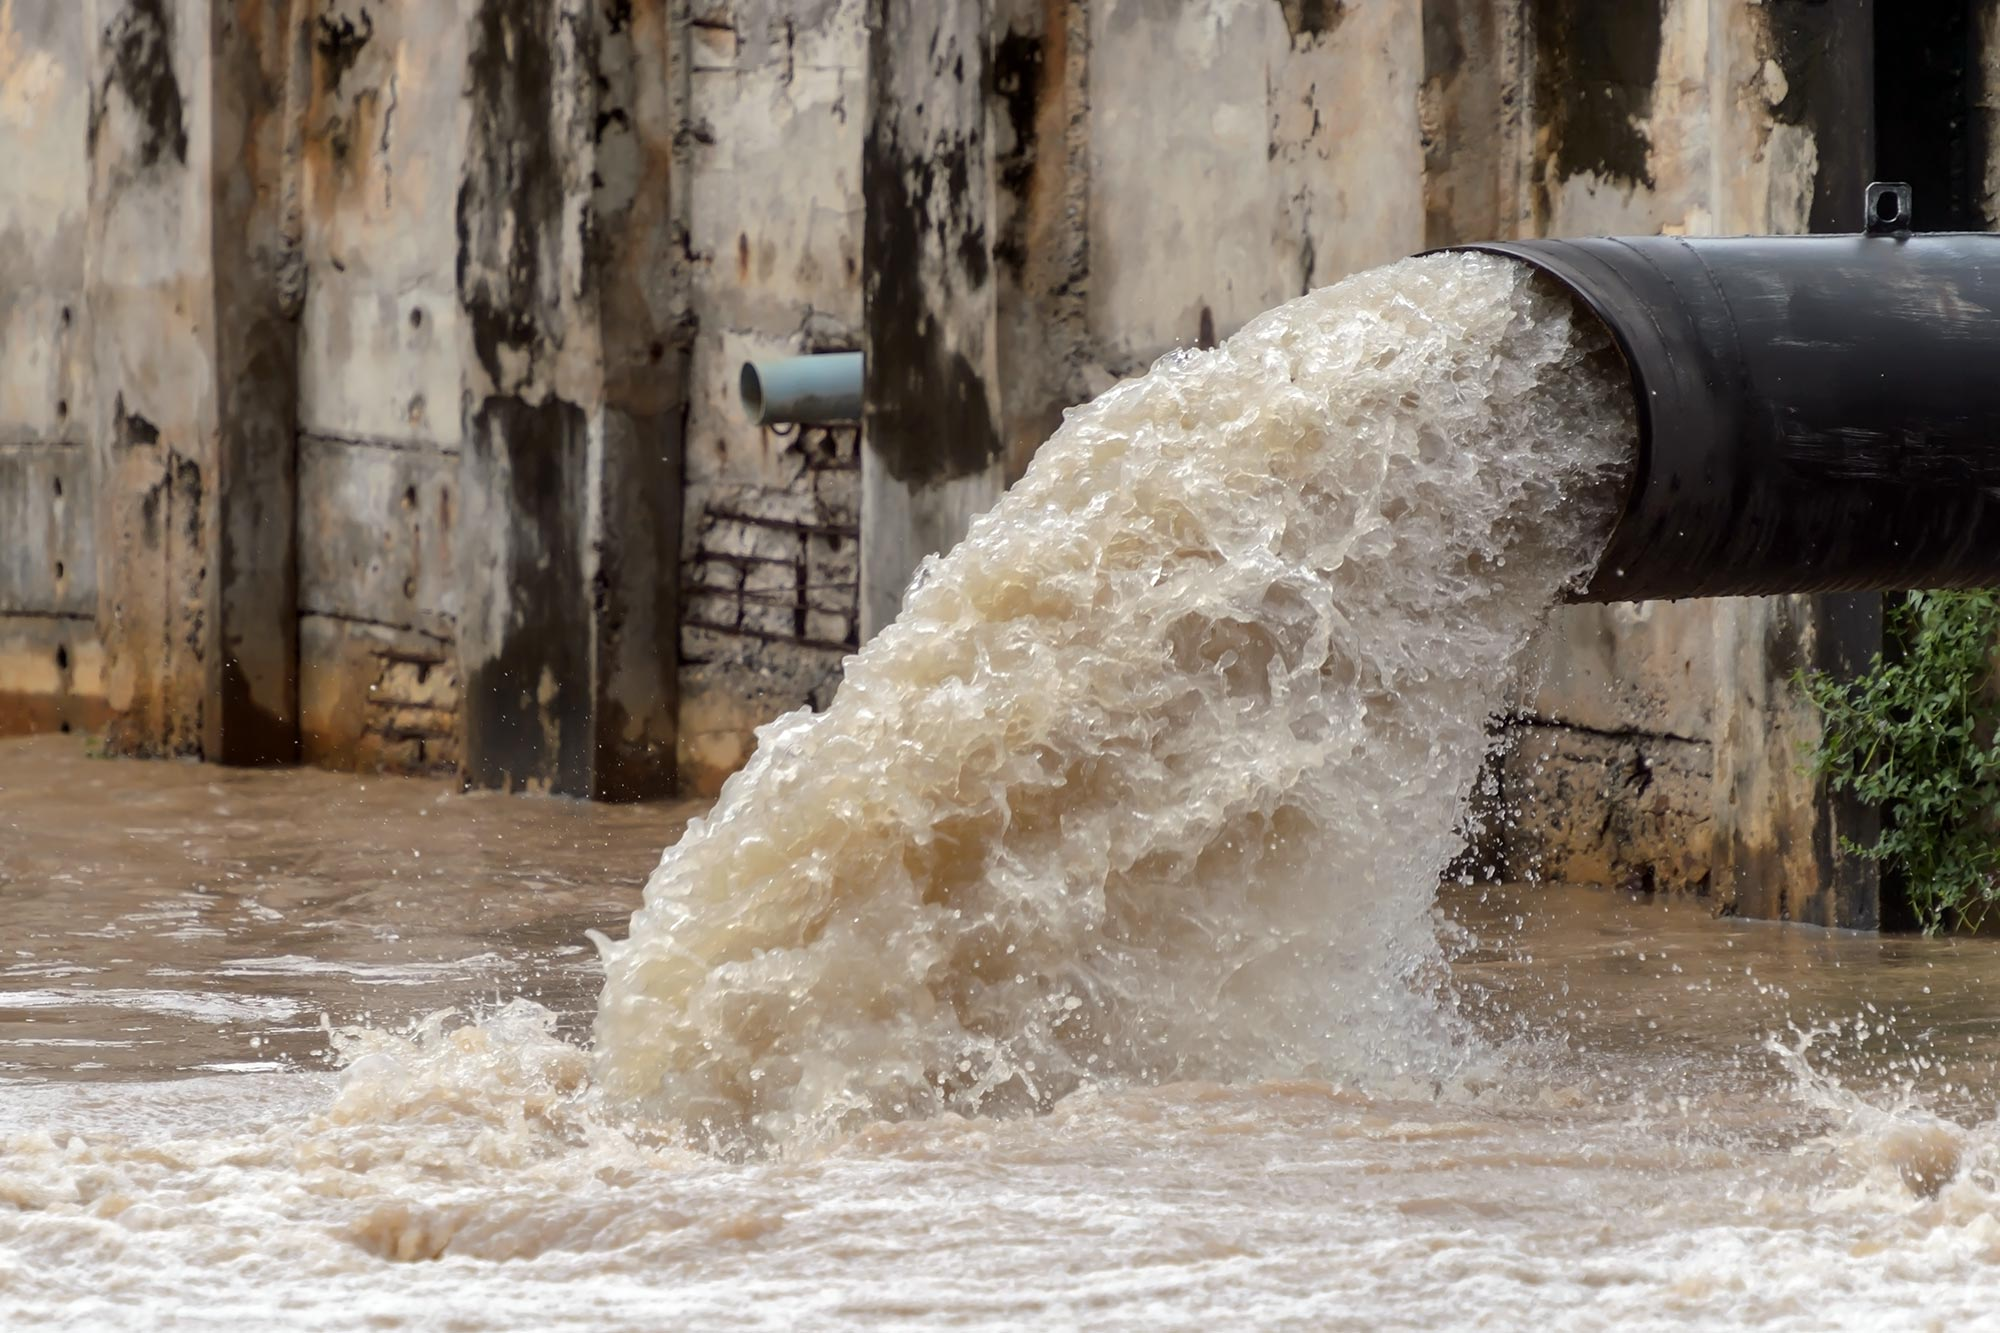 Vast Amounts of Valuable Energy, Nutrients, Water Lost in World's Fast-Rising Wastewater Streams